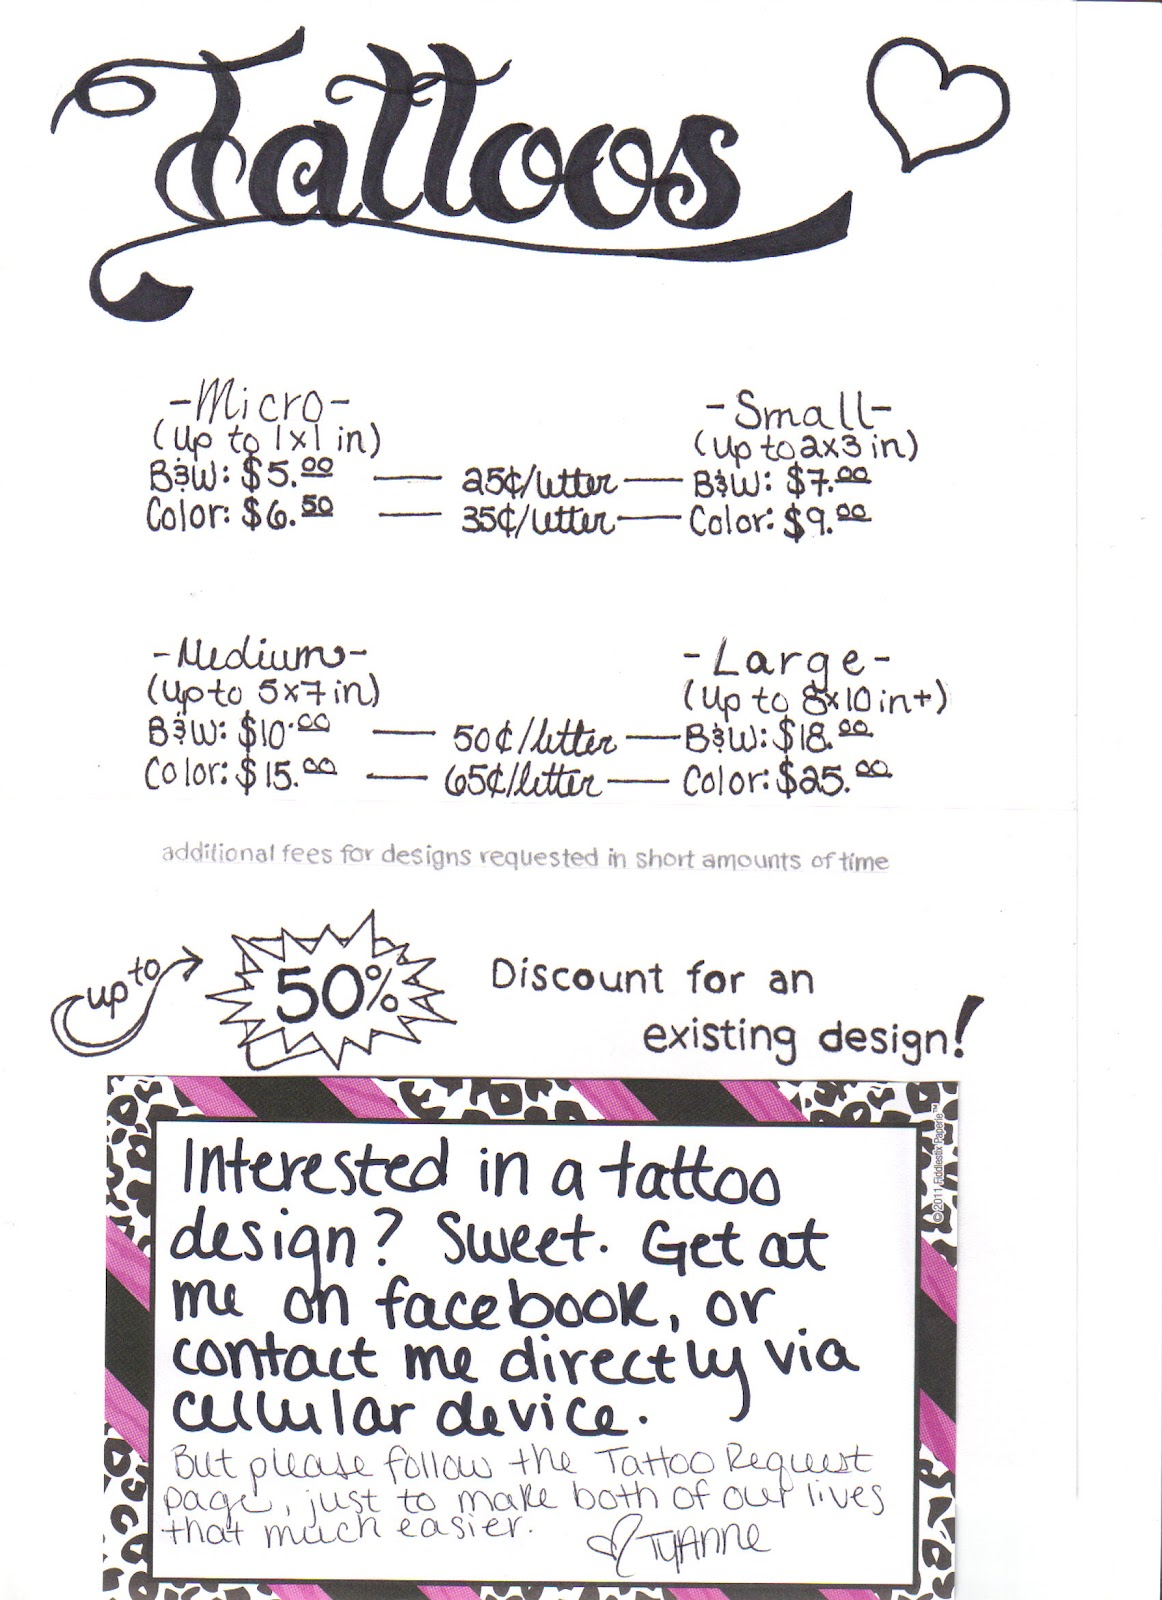 Femme Arts: Tattoos: Prices & How To Request Designs